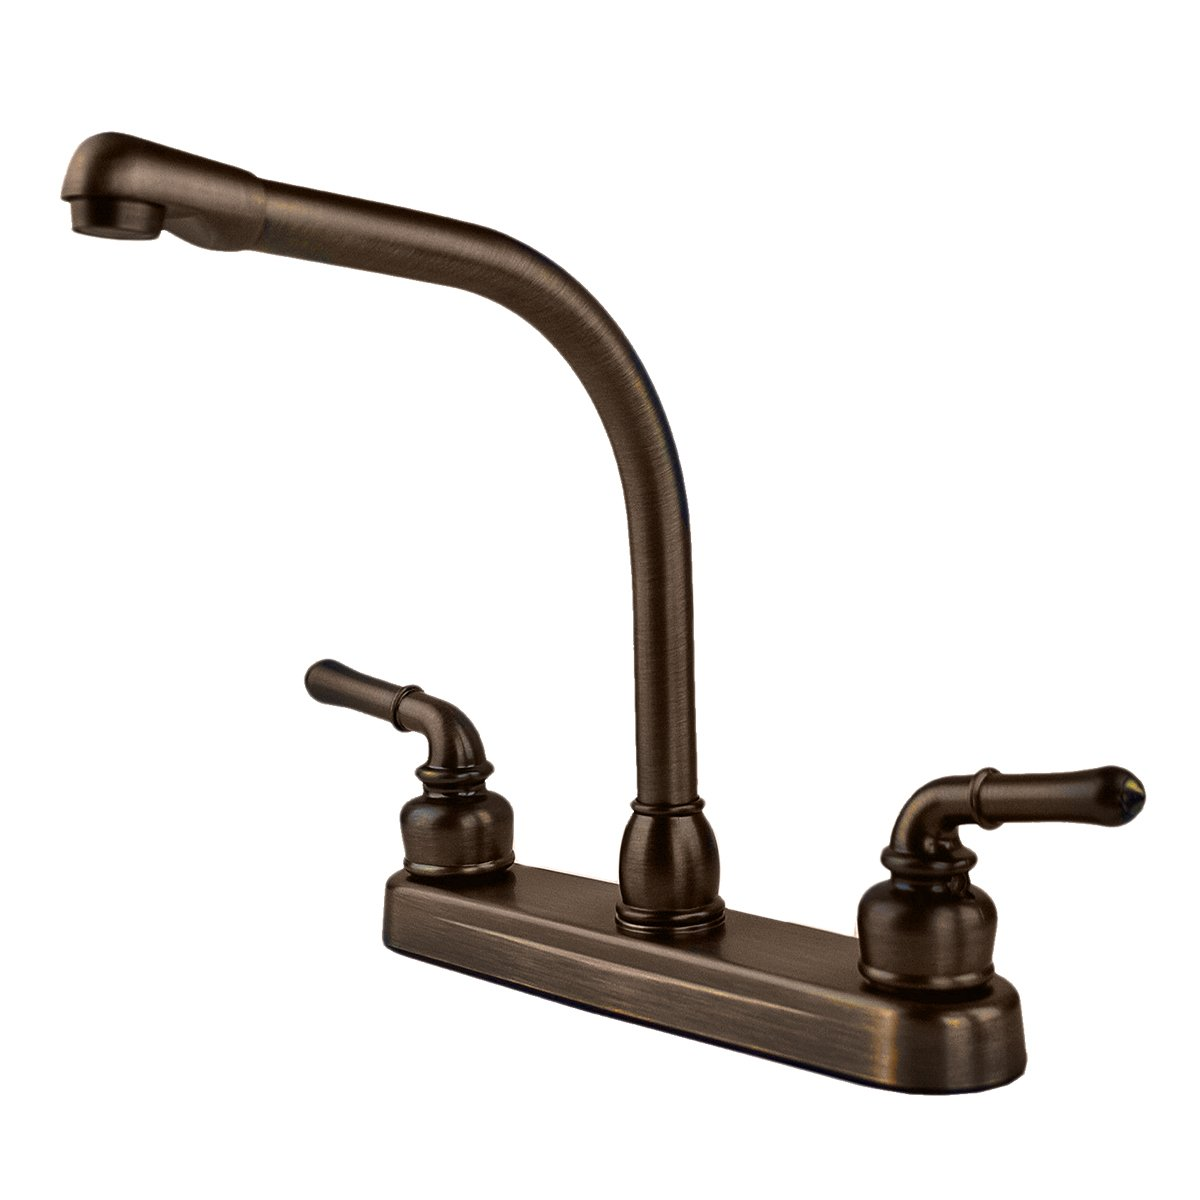 Amazon.com: RV / Mobile Home High Rise Kitchen Sink Faucet, Oil Rubbed  Bronze: Automotive